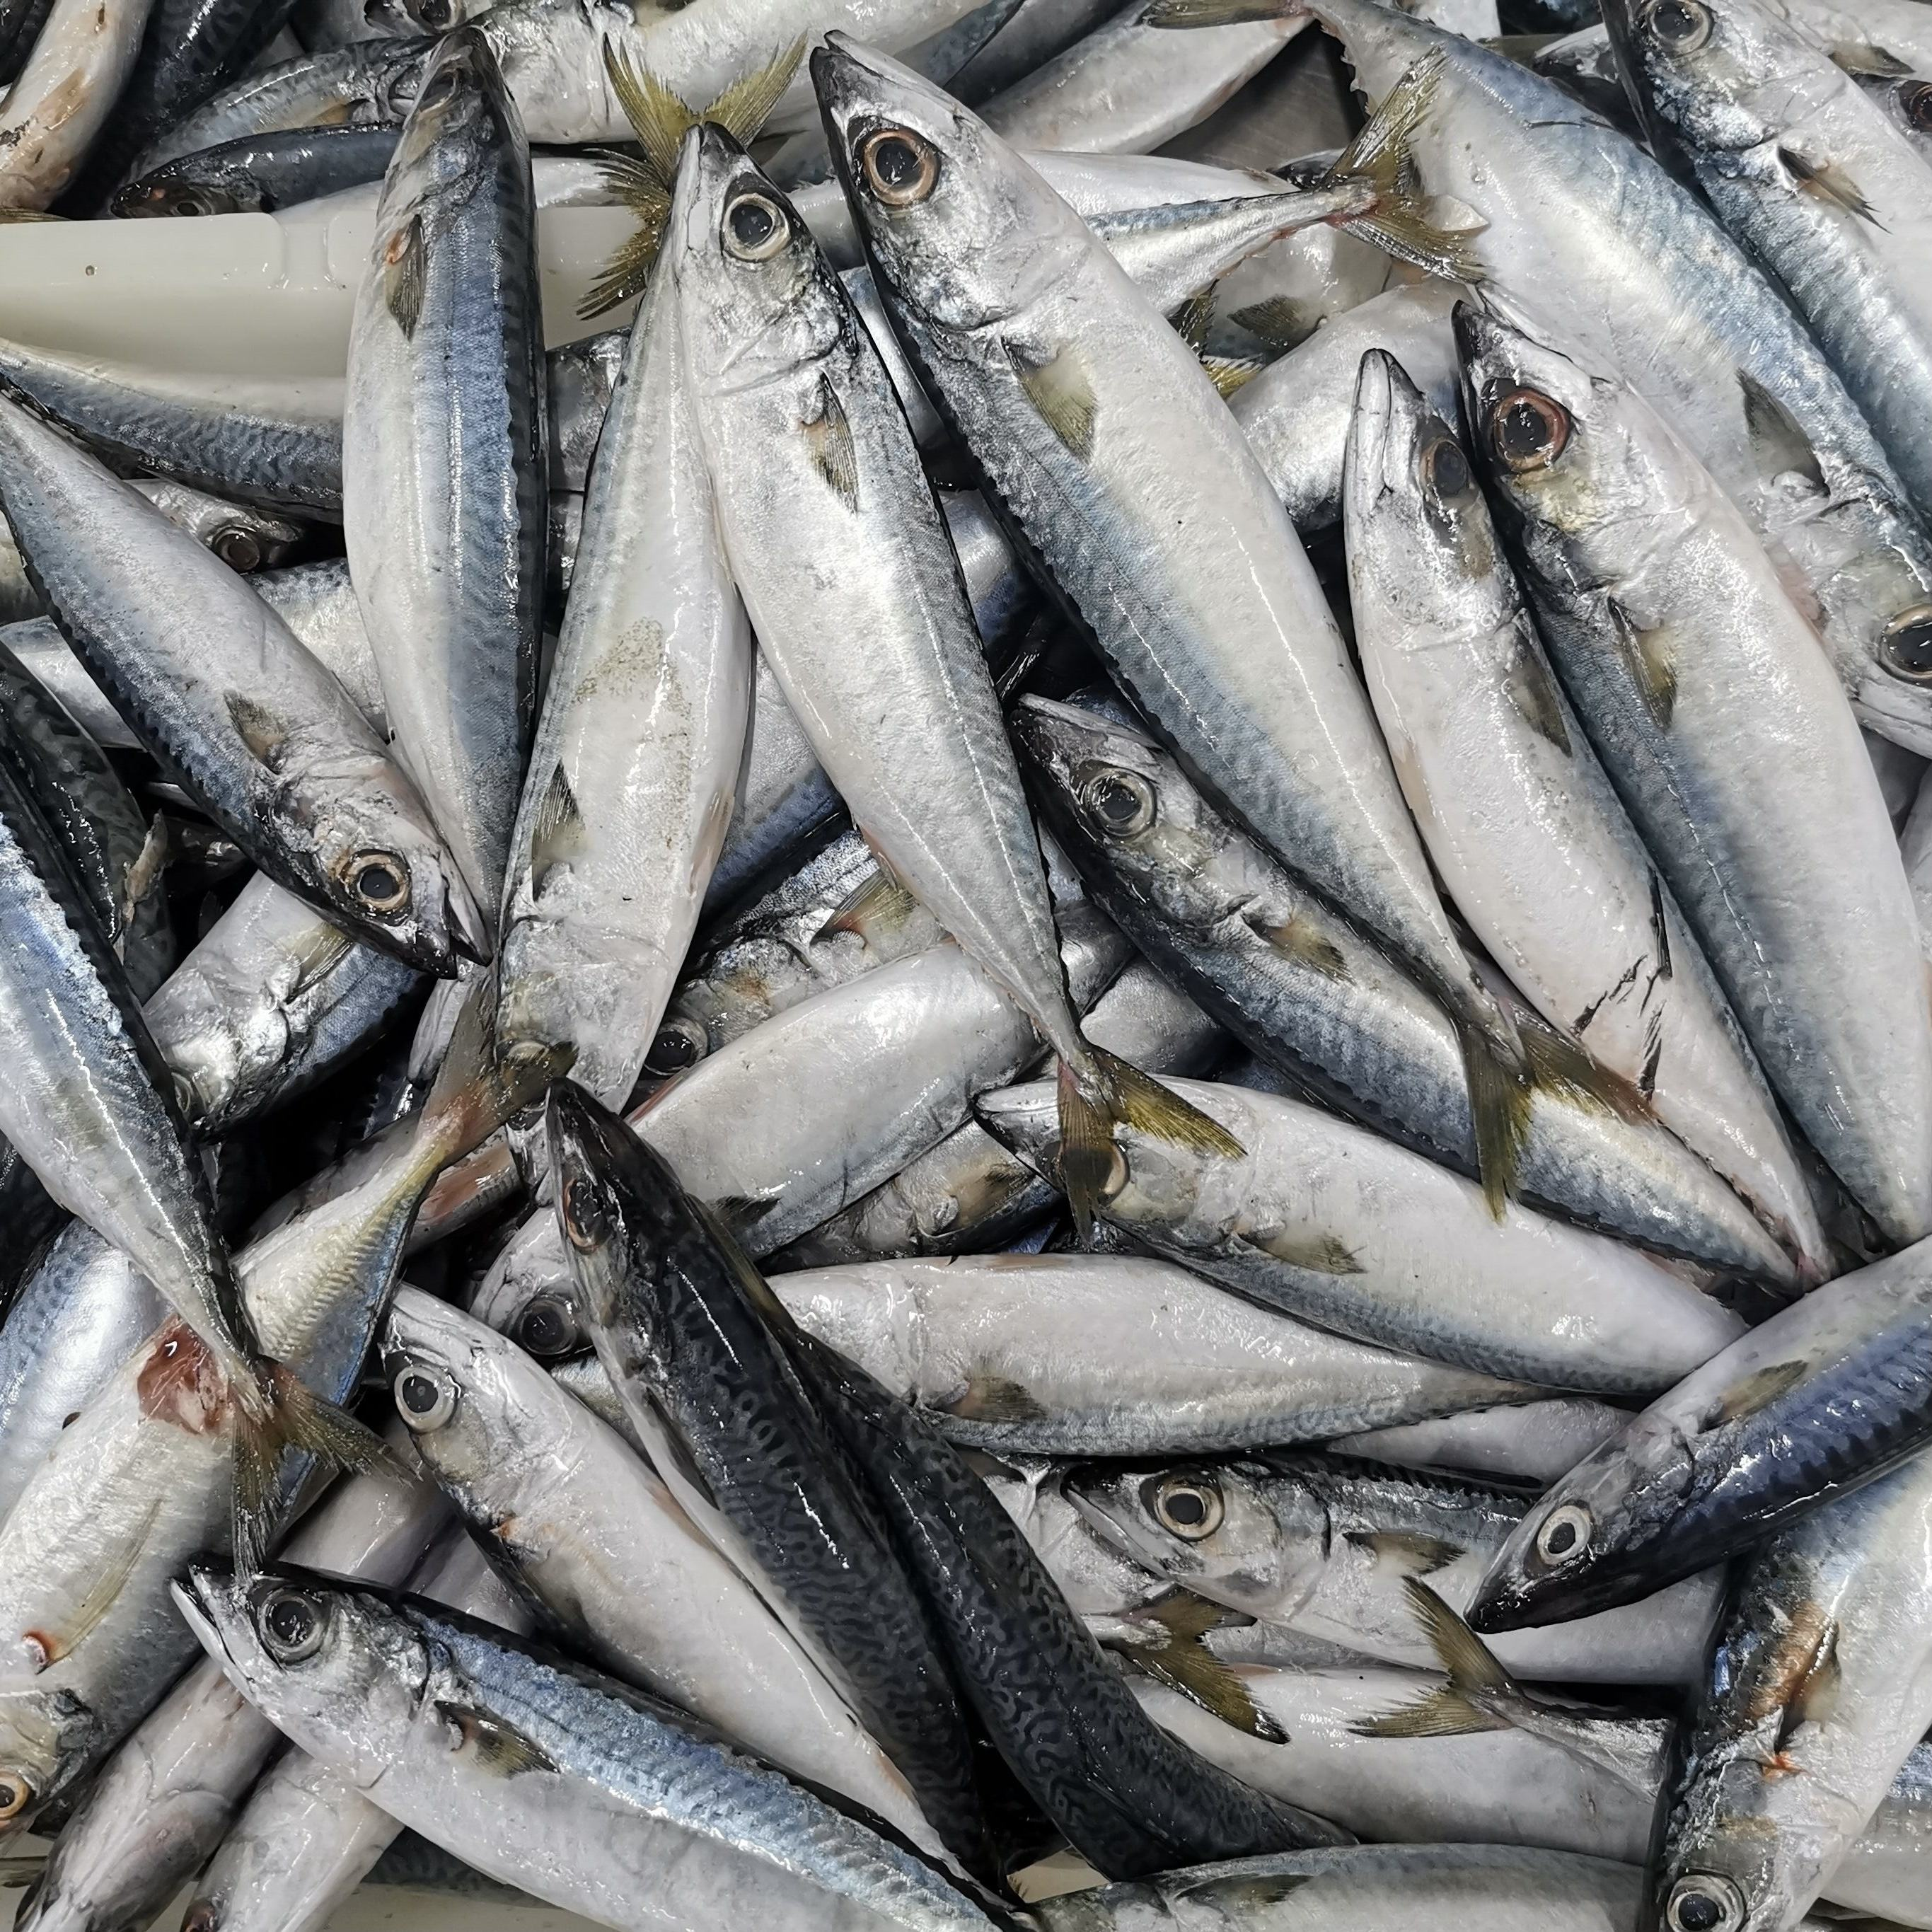 Pacific Mackerel 400G White King Frozen Fish Buyers Iso Fillets Dutch Seafood